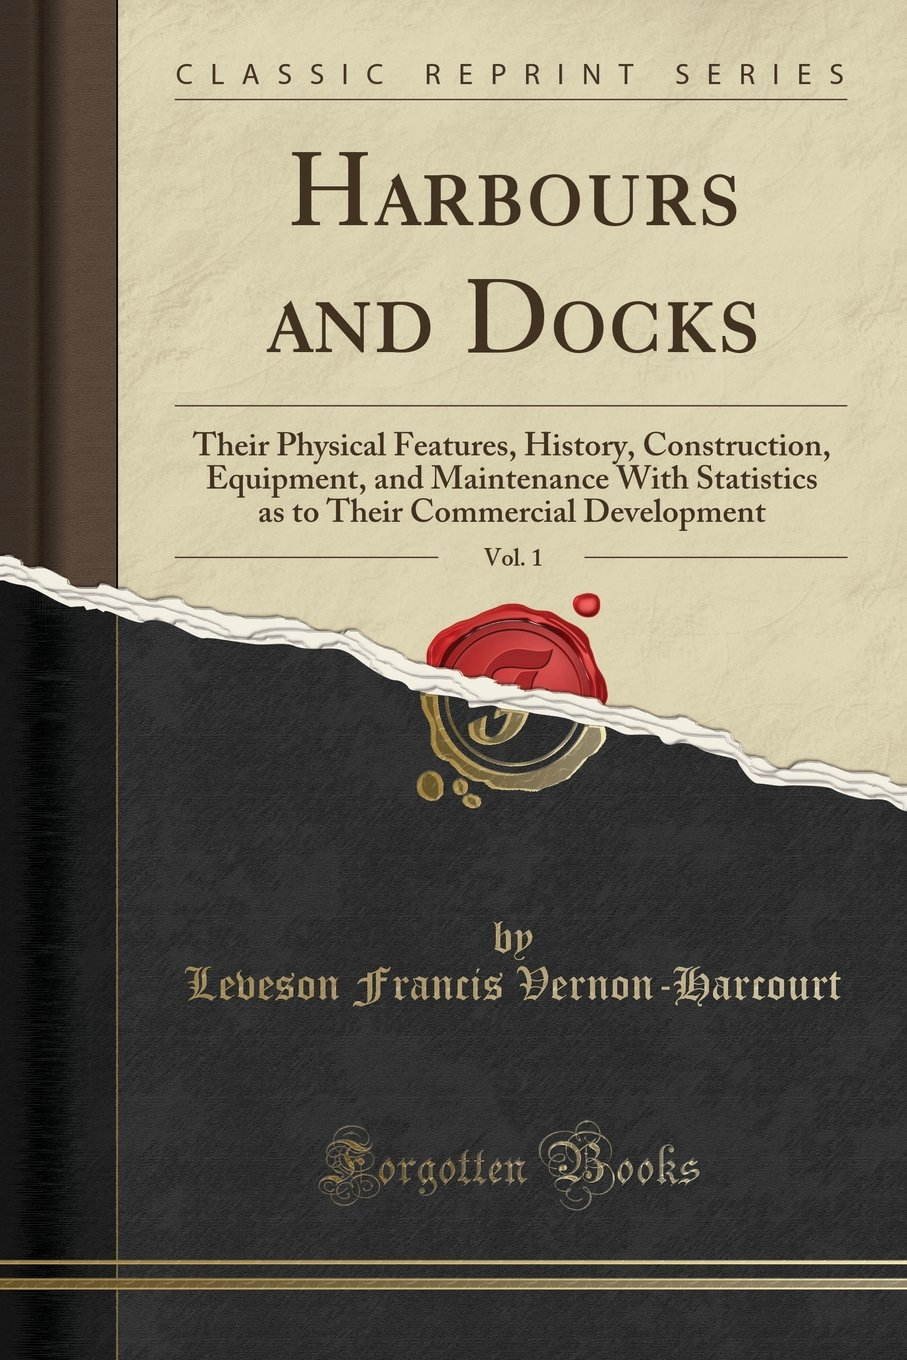 Harbours and Docks, Vol. 1: Their Physical Features, History, Construction, Equipment, and Maintenance With Statistics as to Their Commercial Development (Classic Reprint) ebook